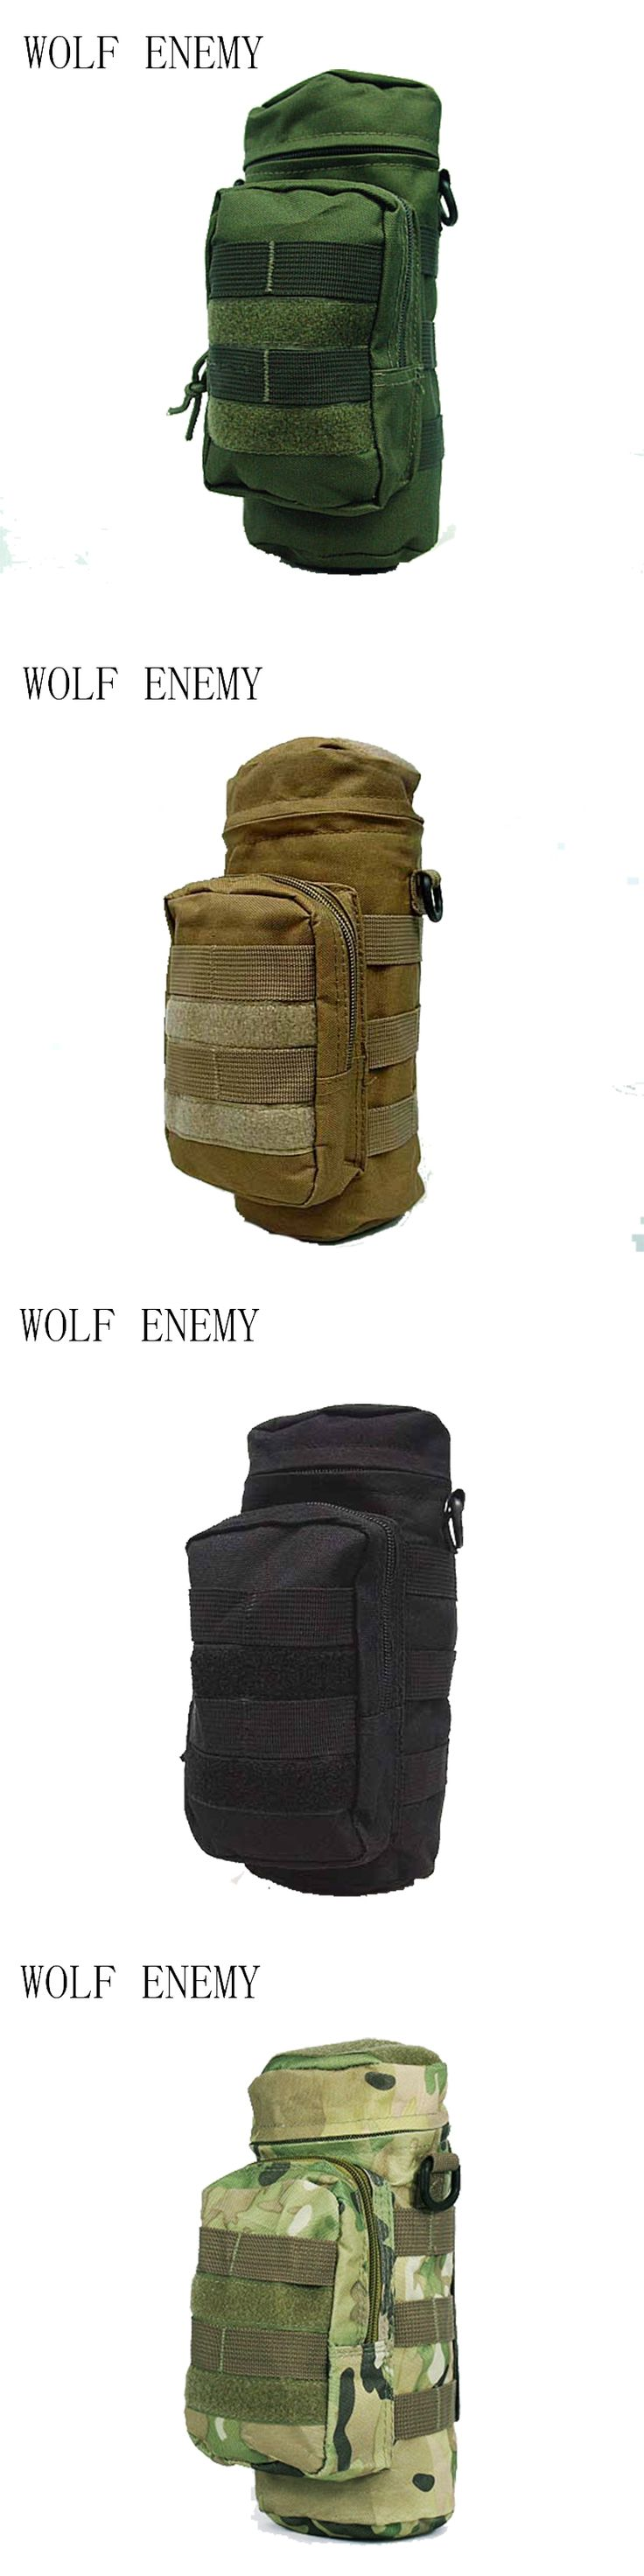 SWAT Airsoft Molle Water Bottle Utility Medic Pouch Outdoor OD Digital Camo BK ACU Camo Woodland bottle bag